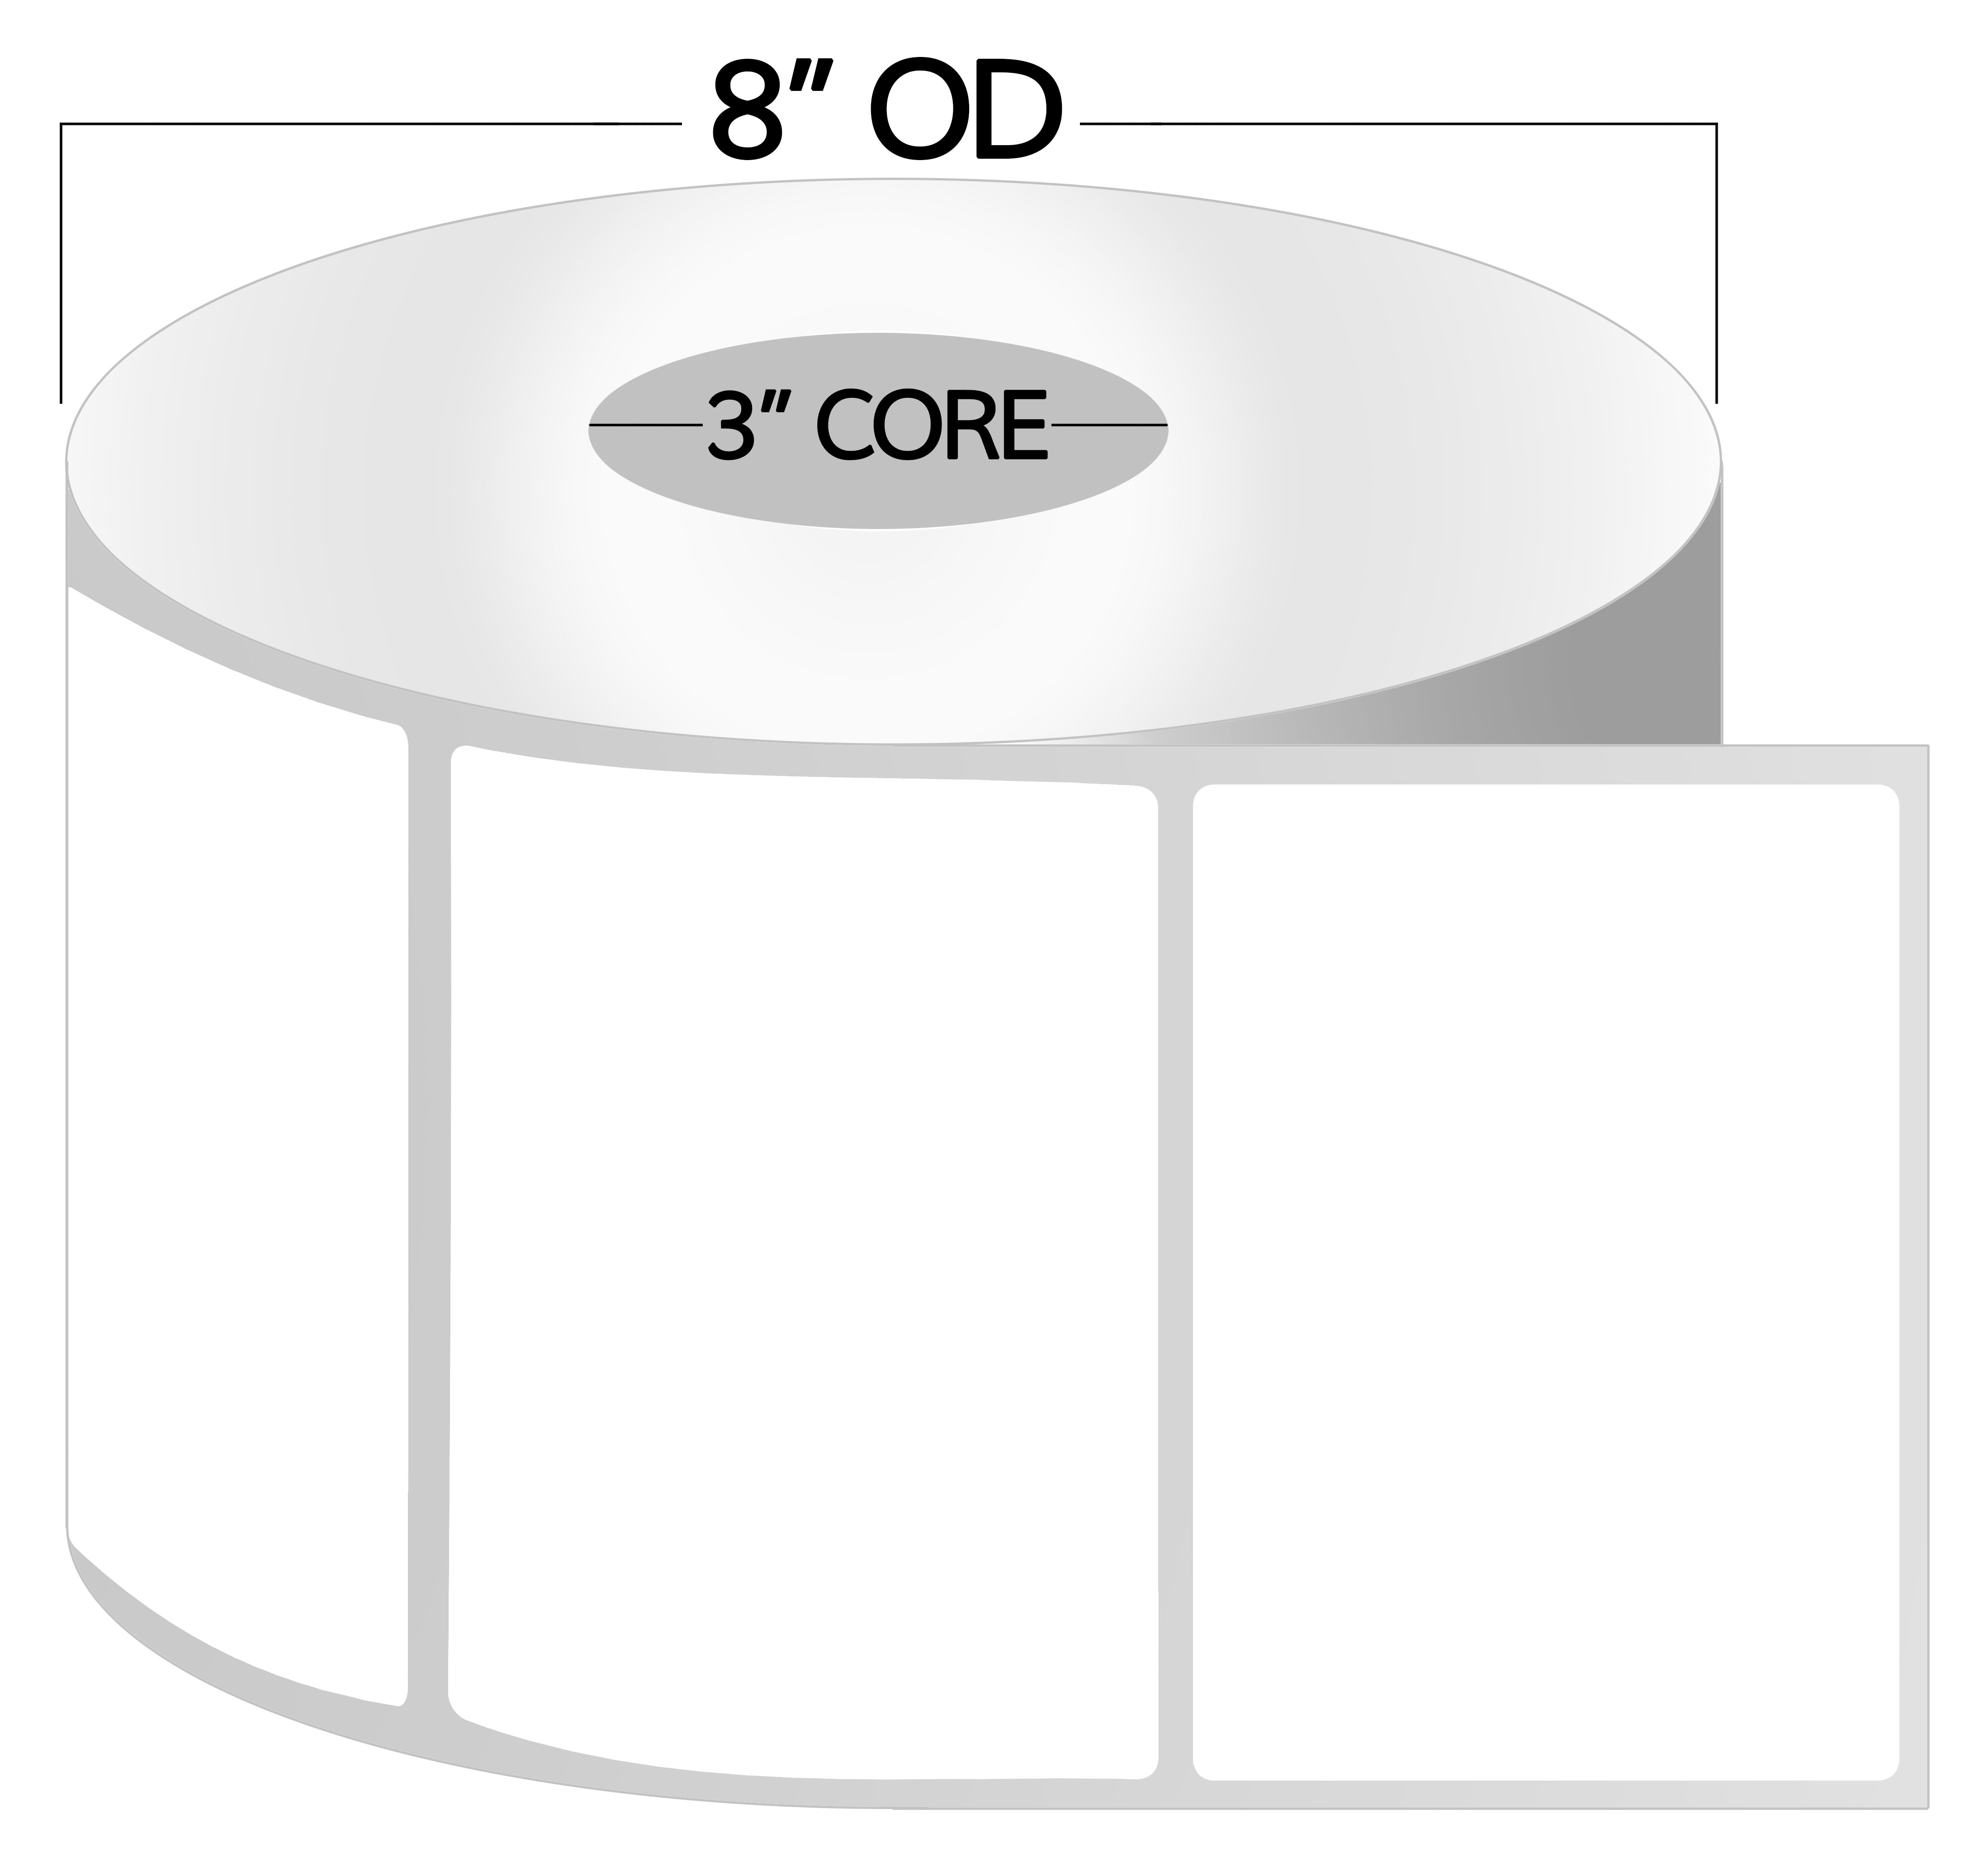 3 Inch Core - 2 x 1.5 Zebra Compatible Direct Thermal Labels 1 Roll